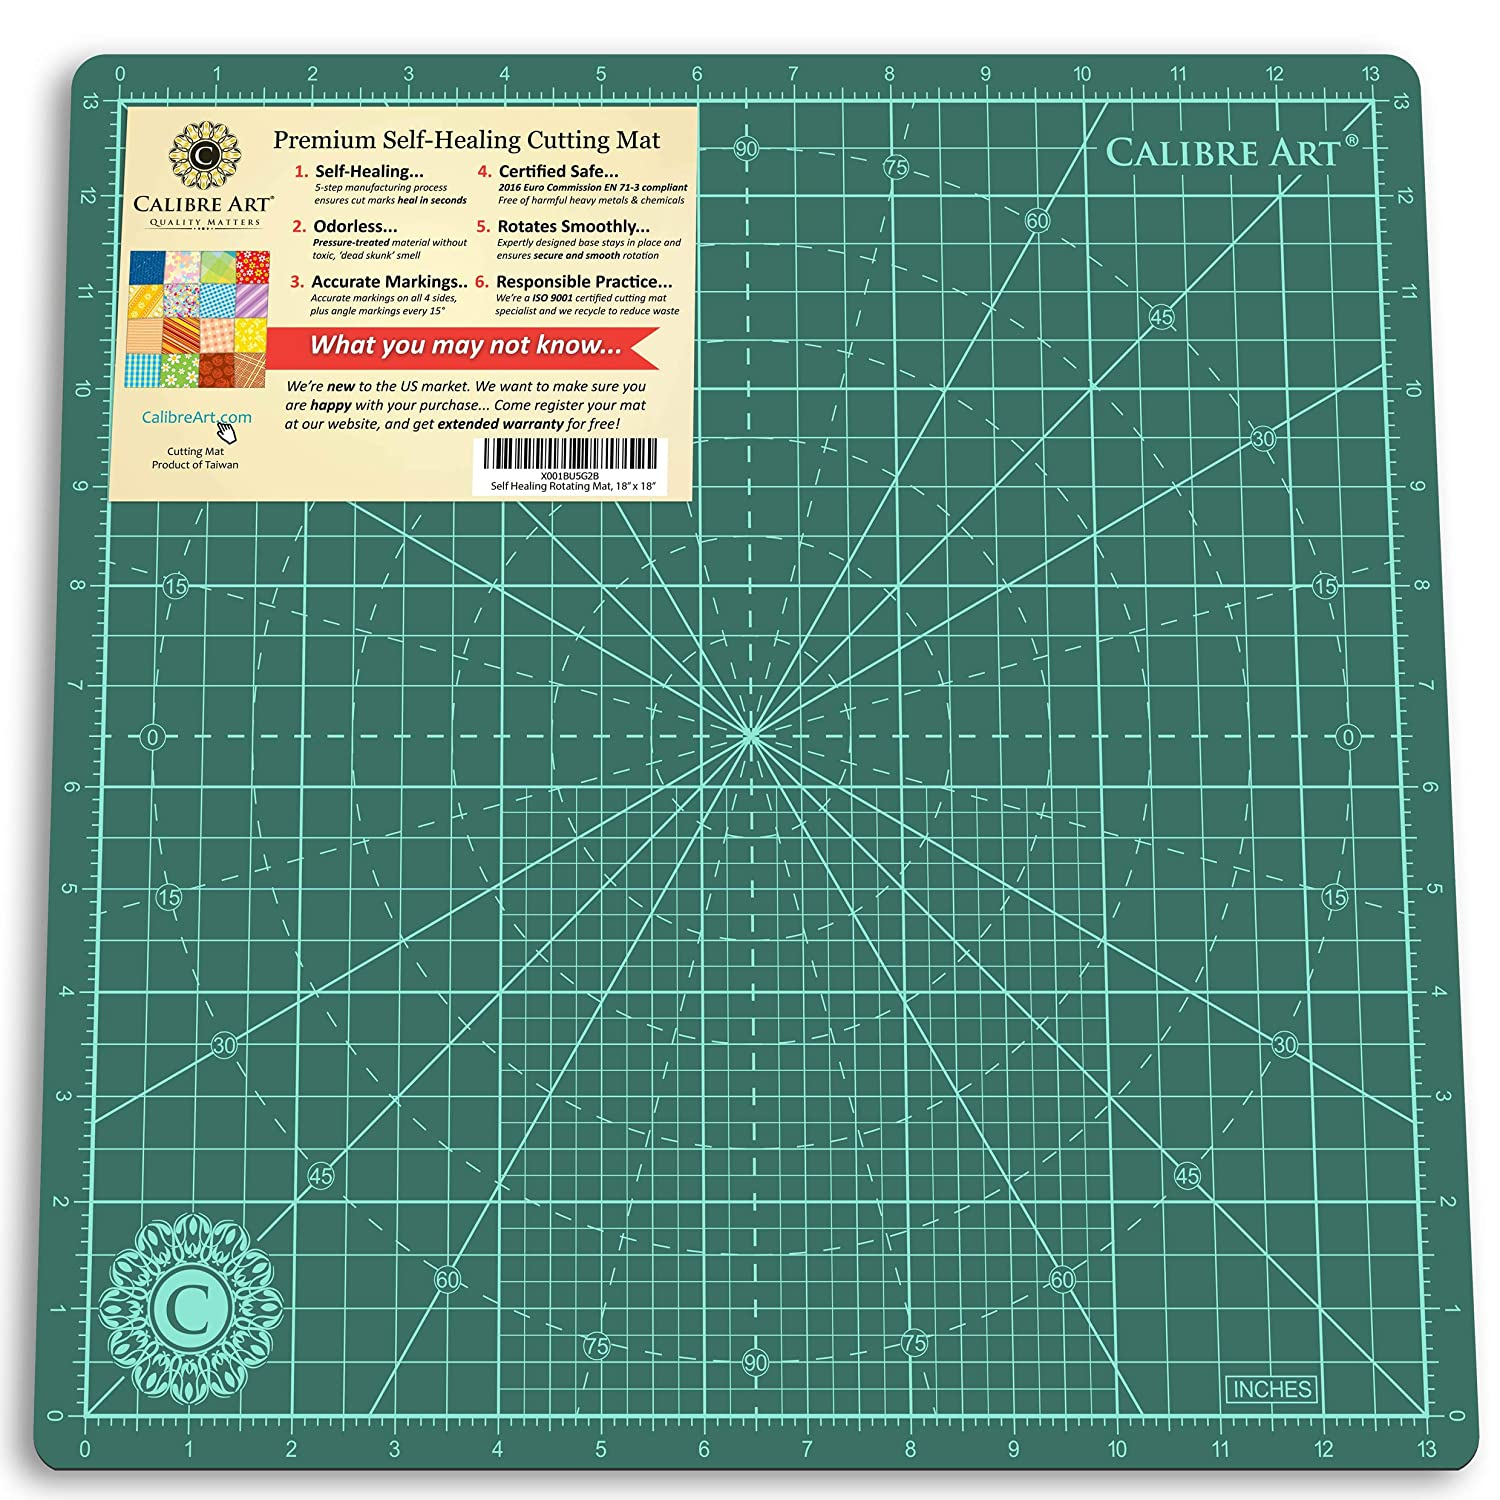 Calibre Art Rotating Self Healing Cutting Mat, Perfect for Quilting & Art Projects, 14x14 (13 grid) 14x14 (13 grid) 4336849742